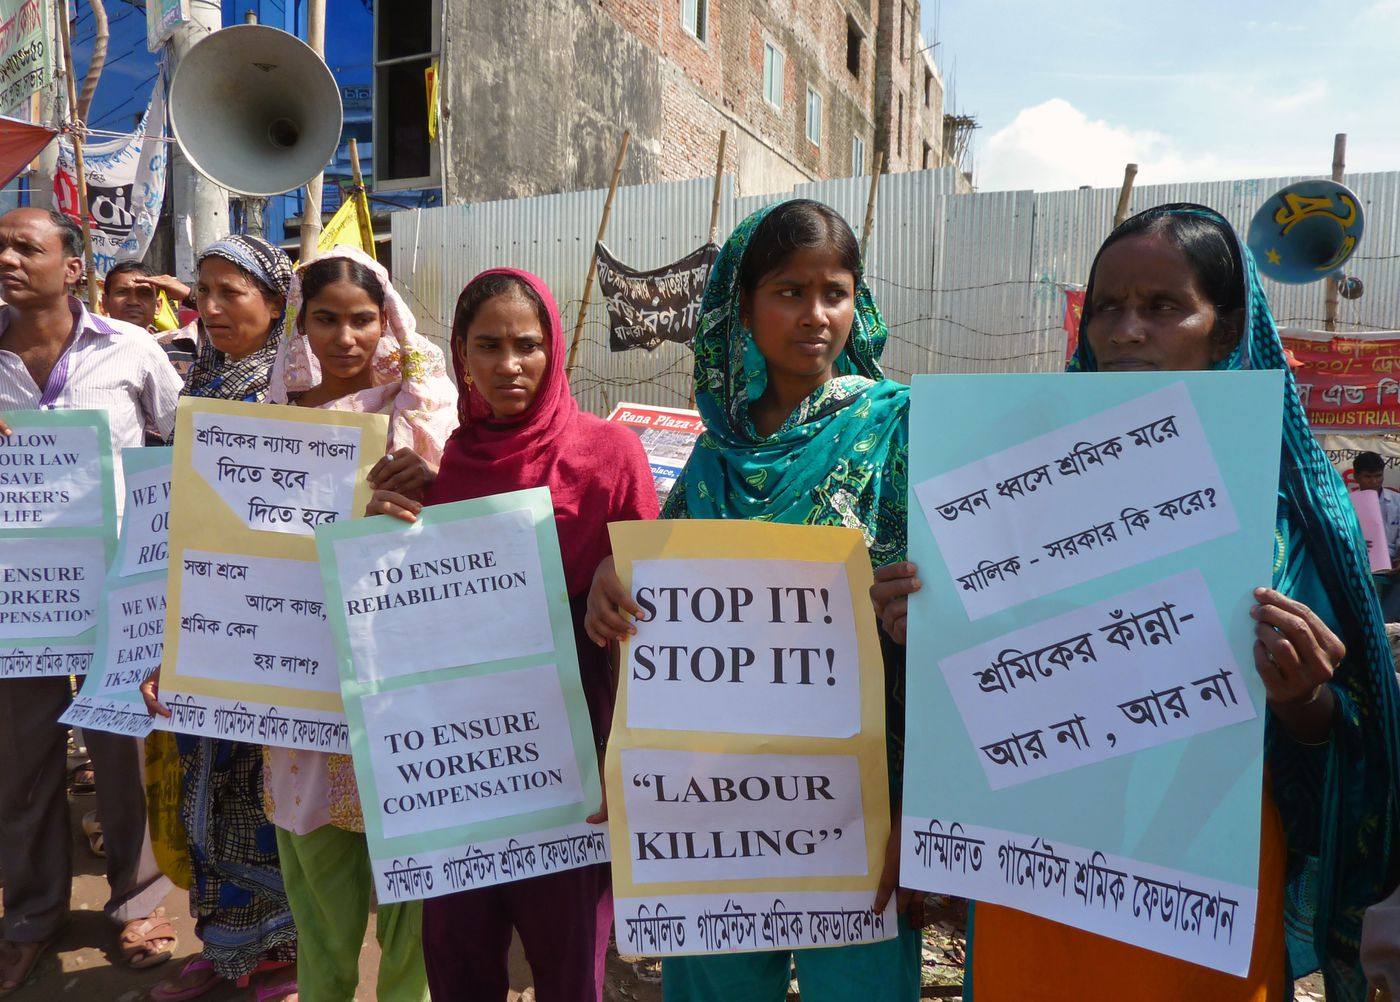 desastre Prisionero de guerra hipoteca  5 Years After the Bangladesh Factory Collapse, Are Workers Safer? - Racked